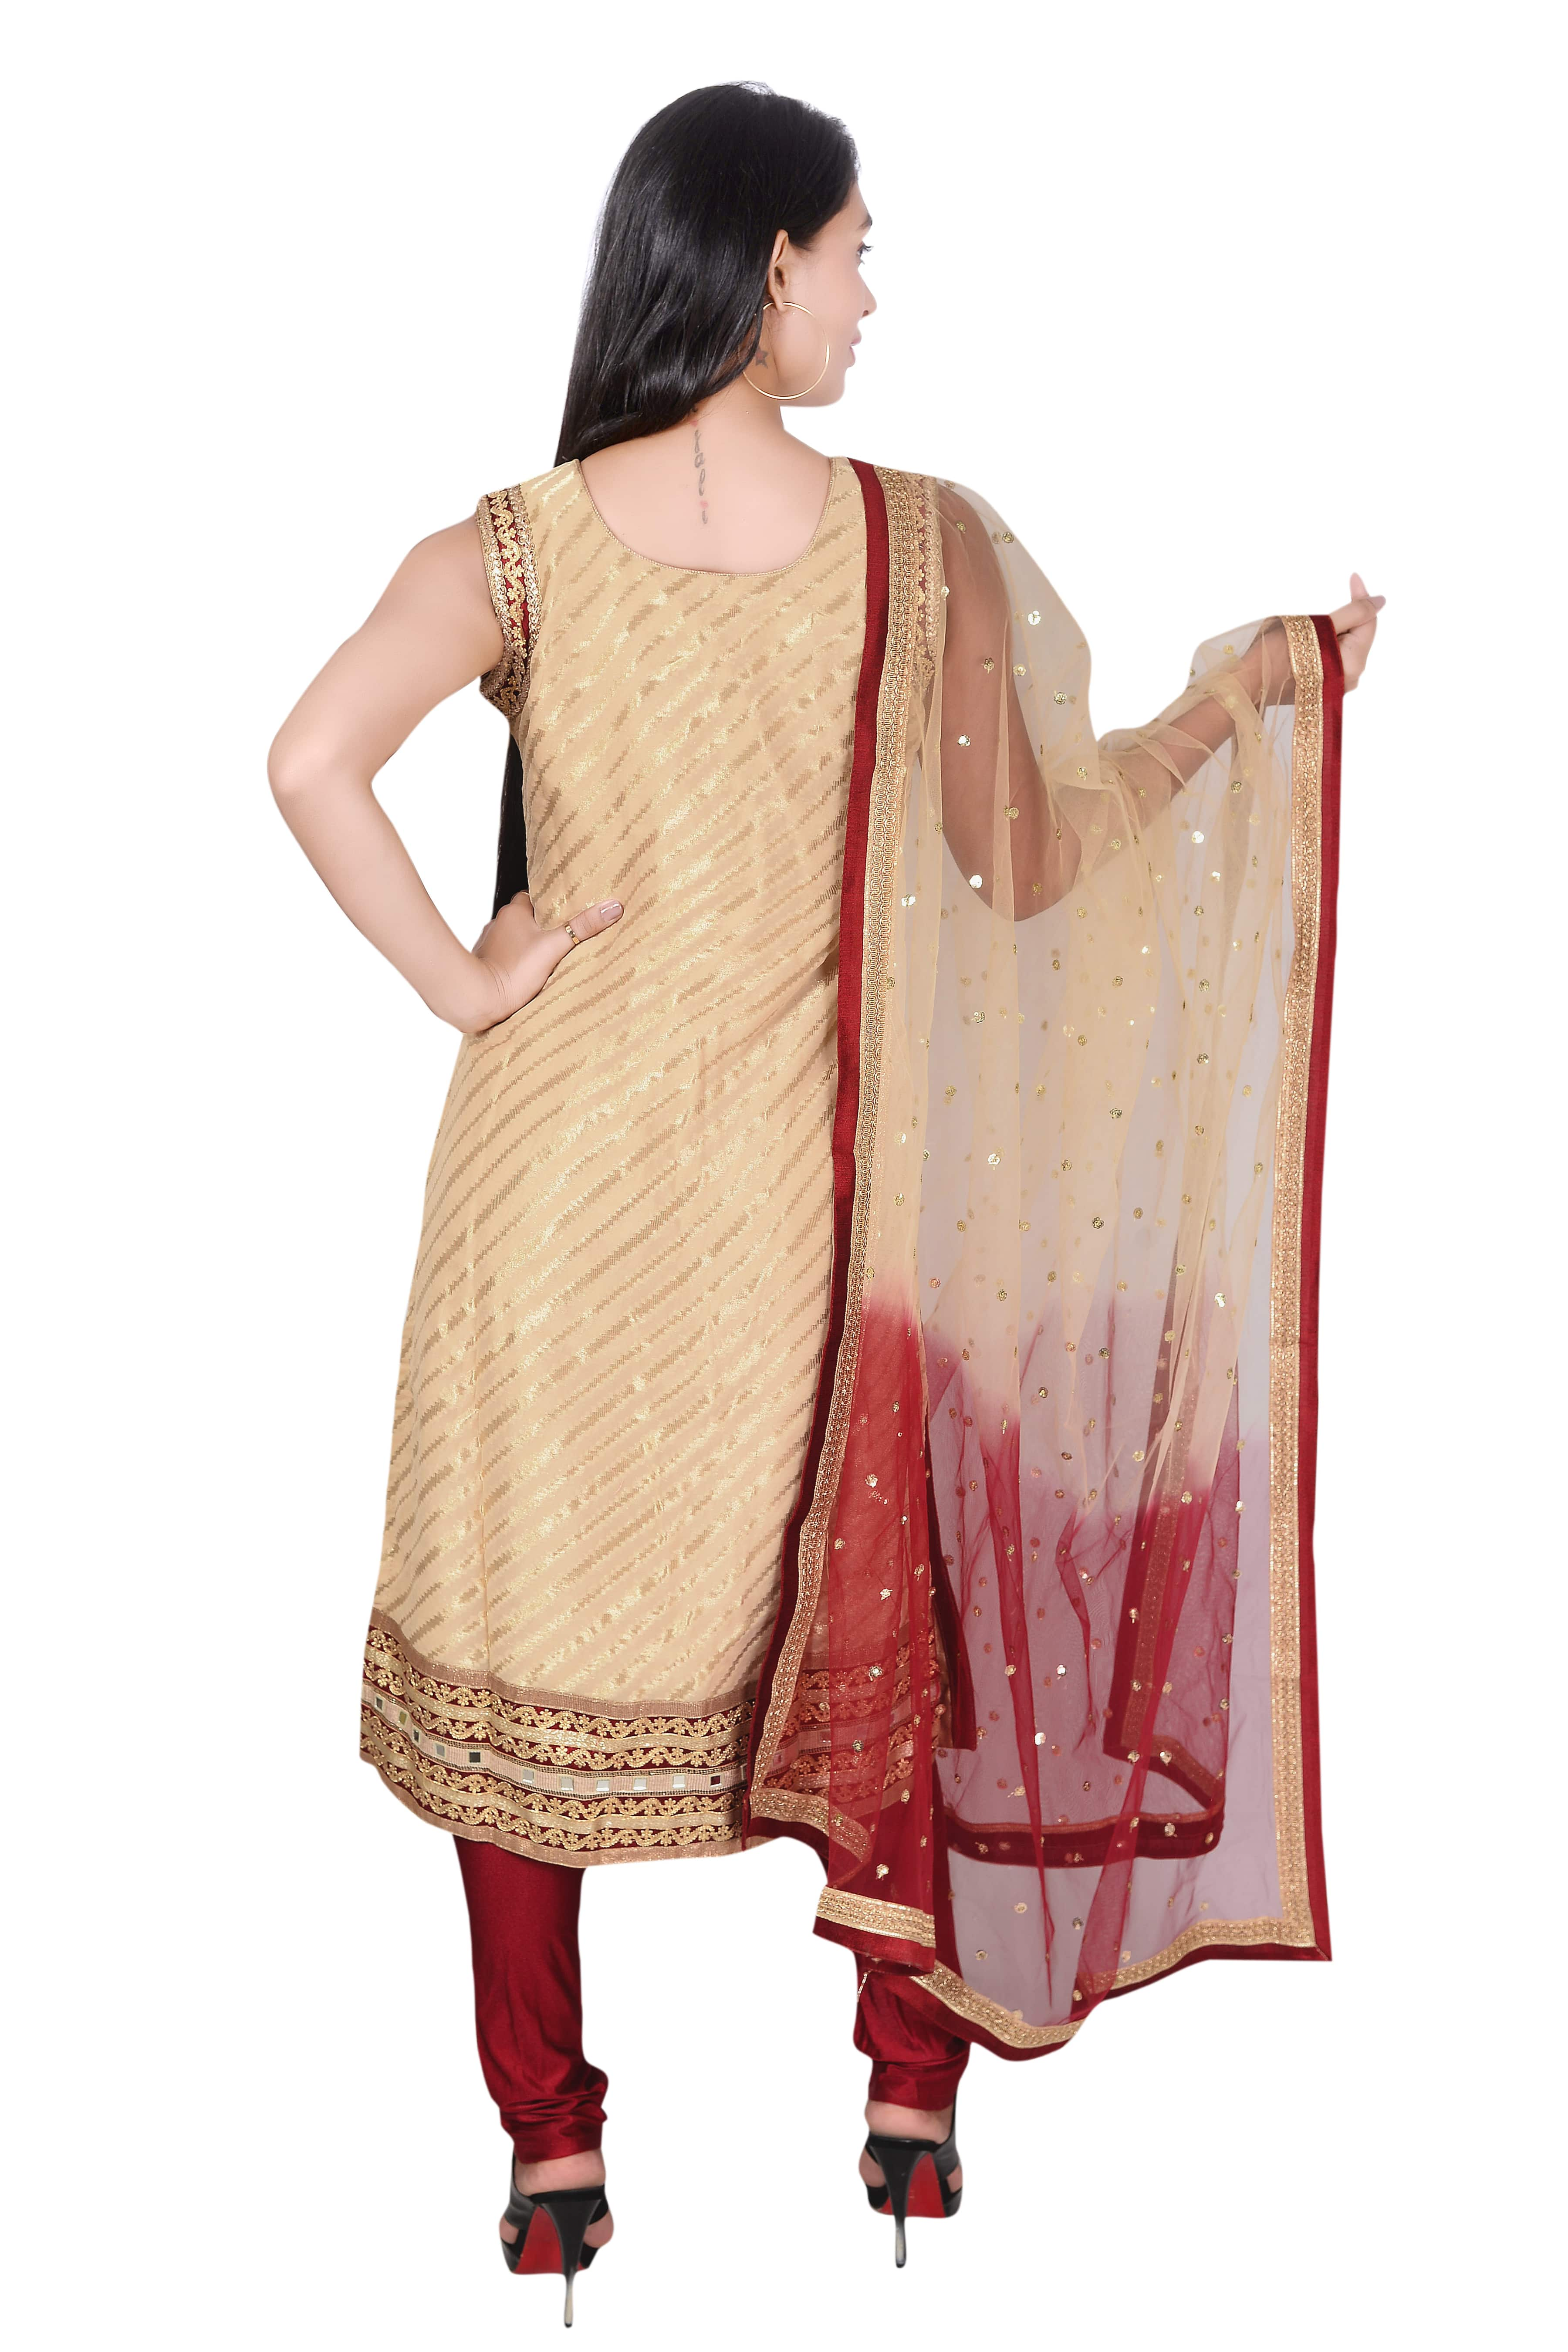 Ladies Punjabi Suits In Bhubaneswar